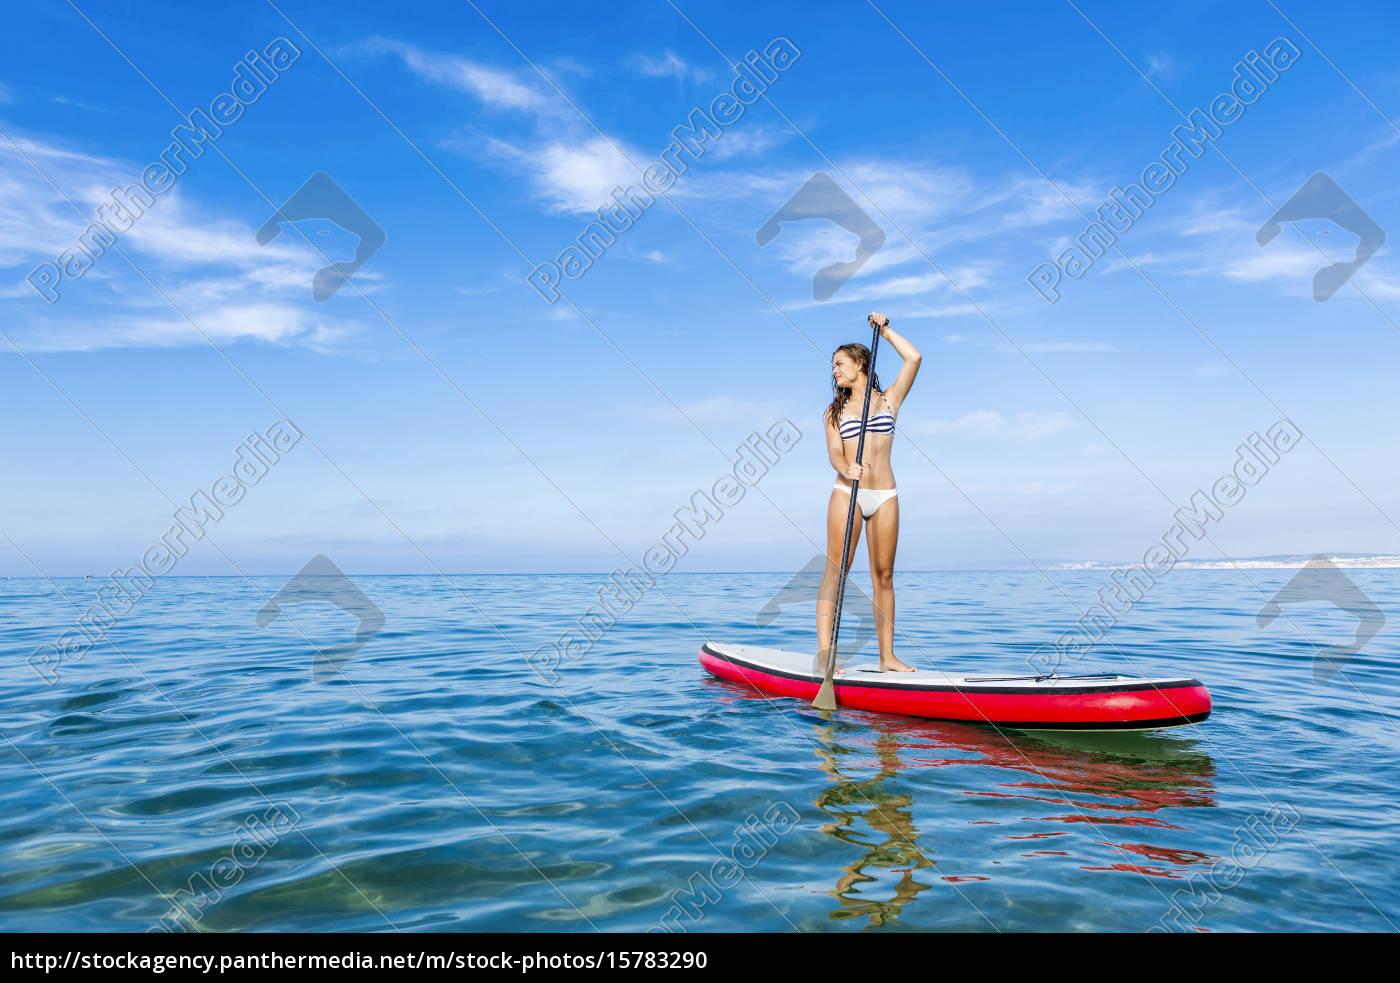 woman, practicing, paddle - 15783290